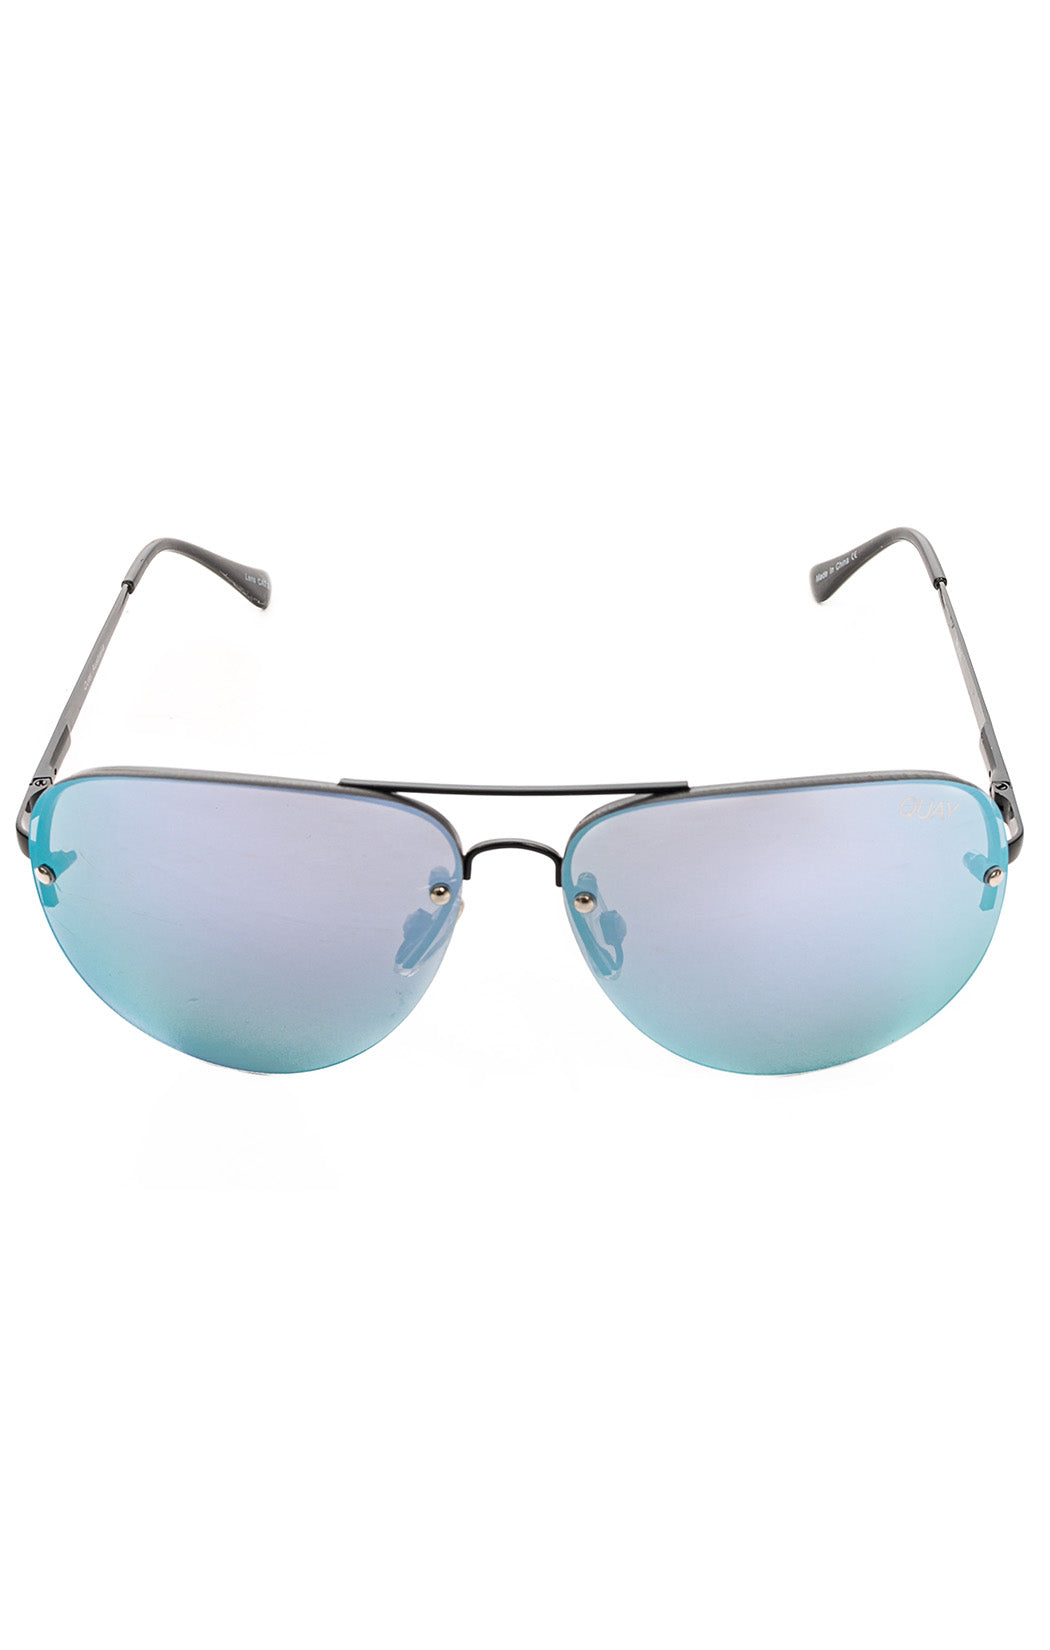 "Front view of QUAY Sunglasses  Size: 5.5"" W x 2"" L"